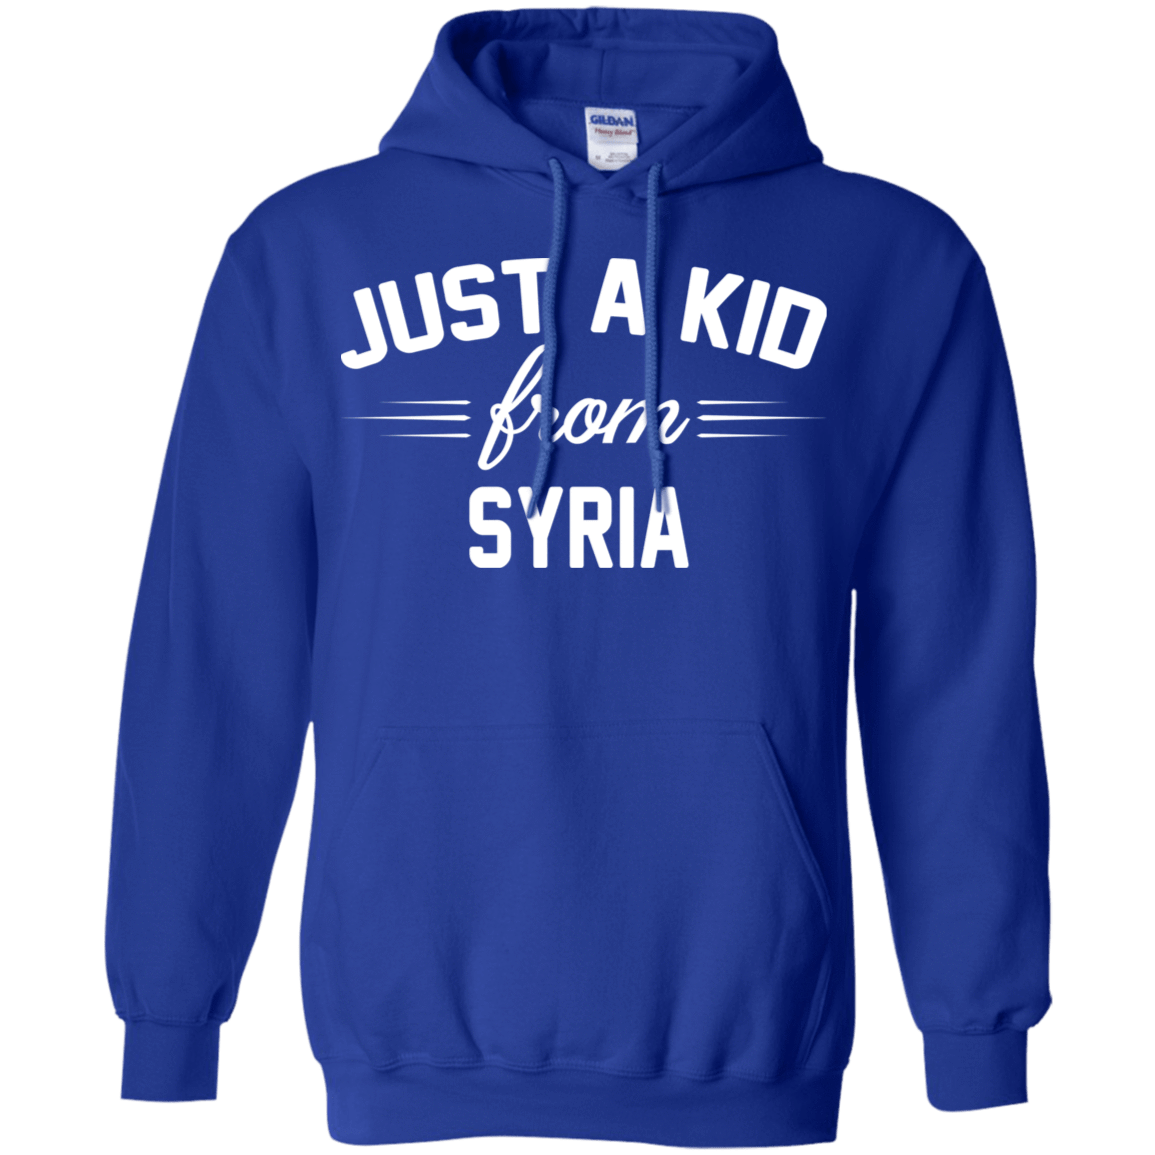 Just a Kid Store | Syria T-Shirts, Hoodie, Tank 541-4765-72090853-23175 - Tee Ript